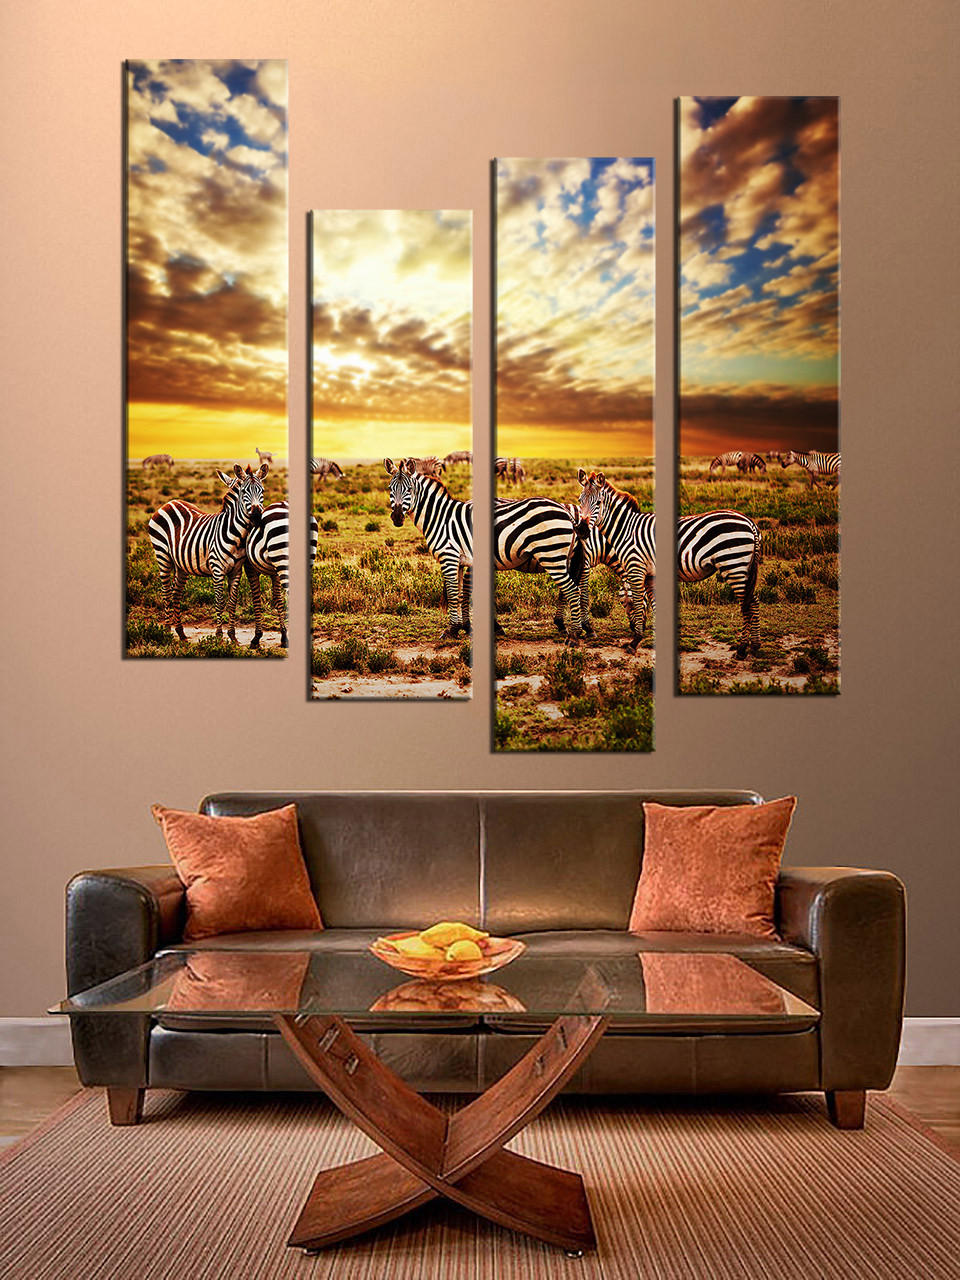 4 piece multi panel art colorful wall decor zebra group canvas wildlife artwork cloud canvas. Black Bedroom Furniture Sets. Home Design Ideas